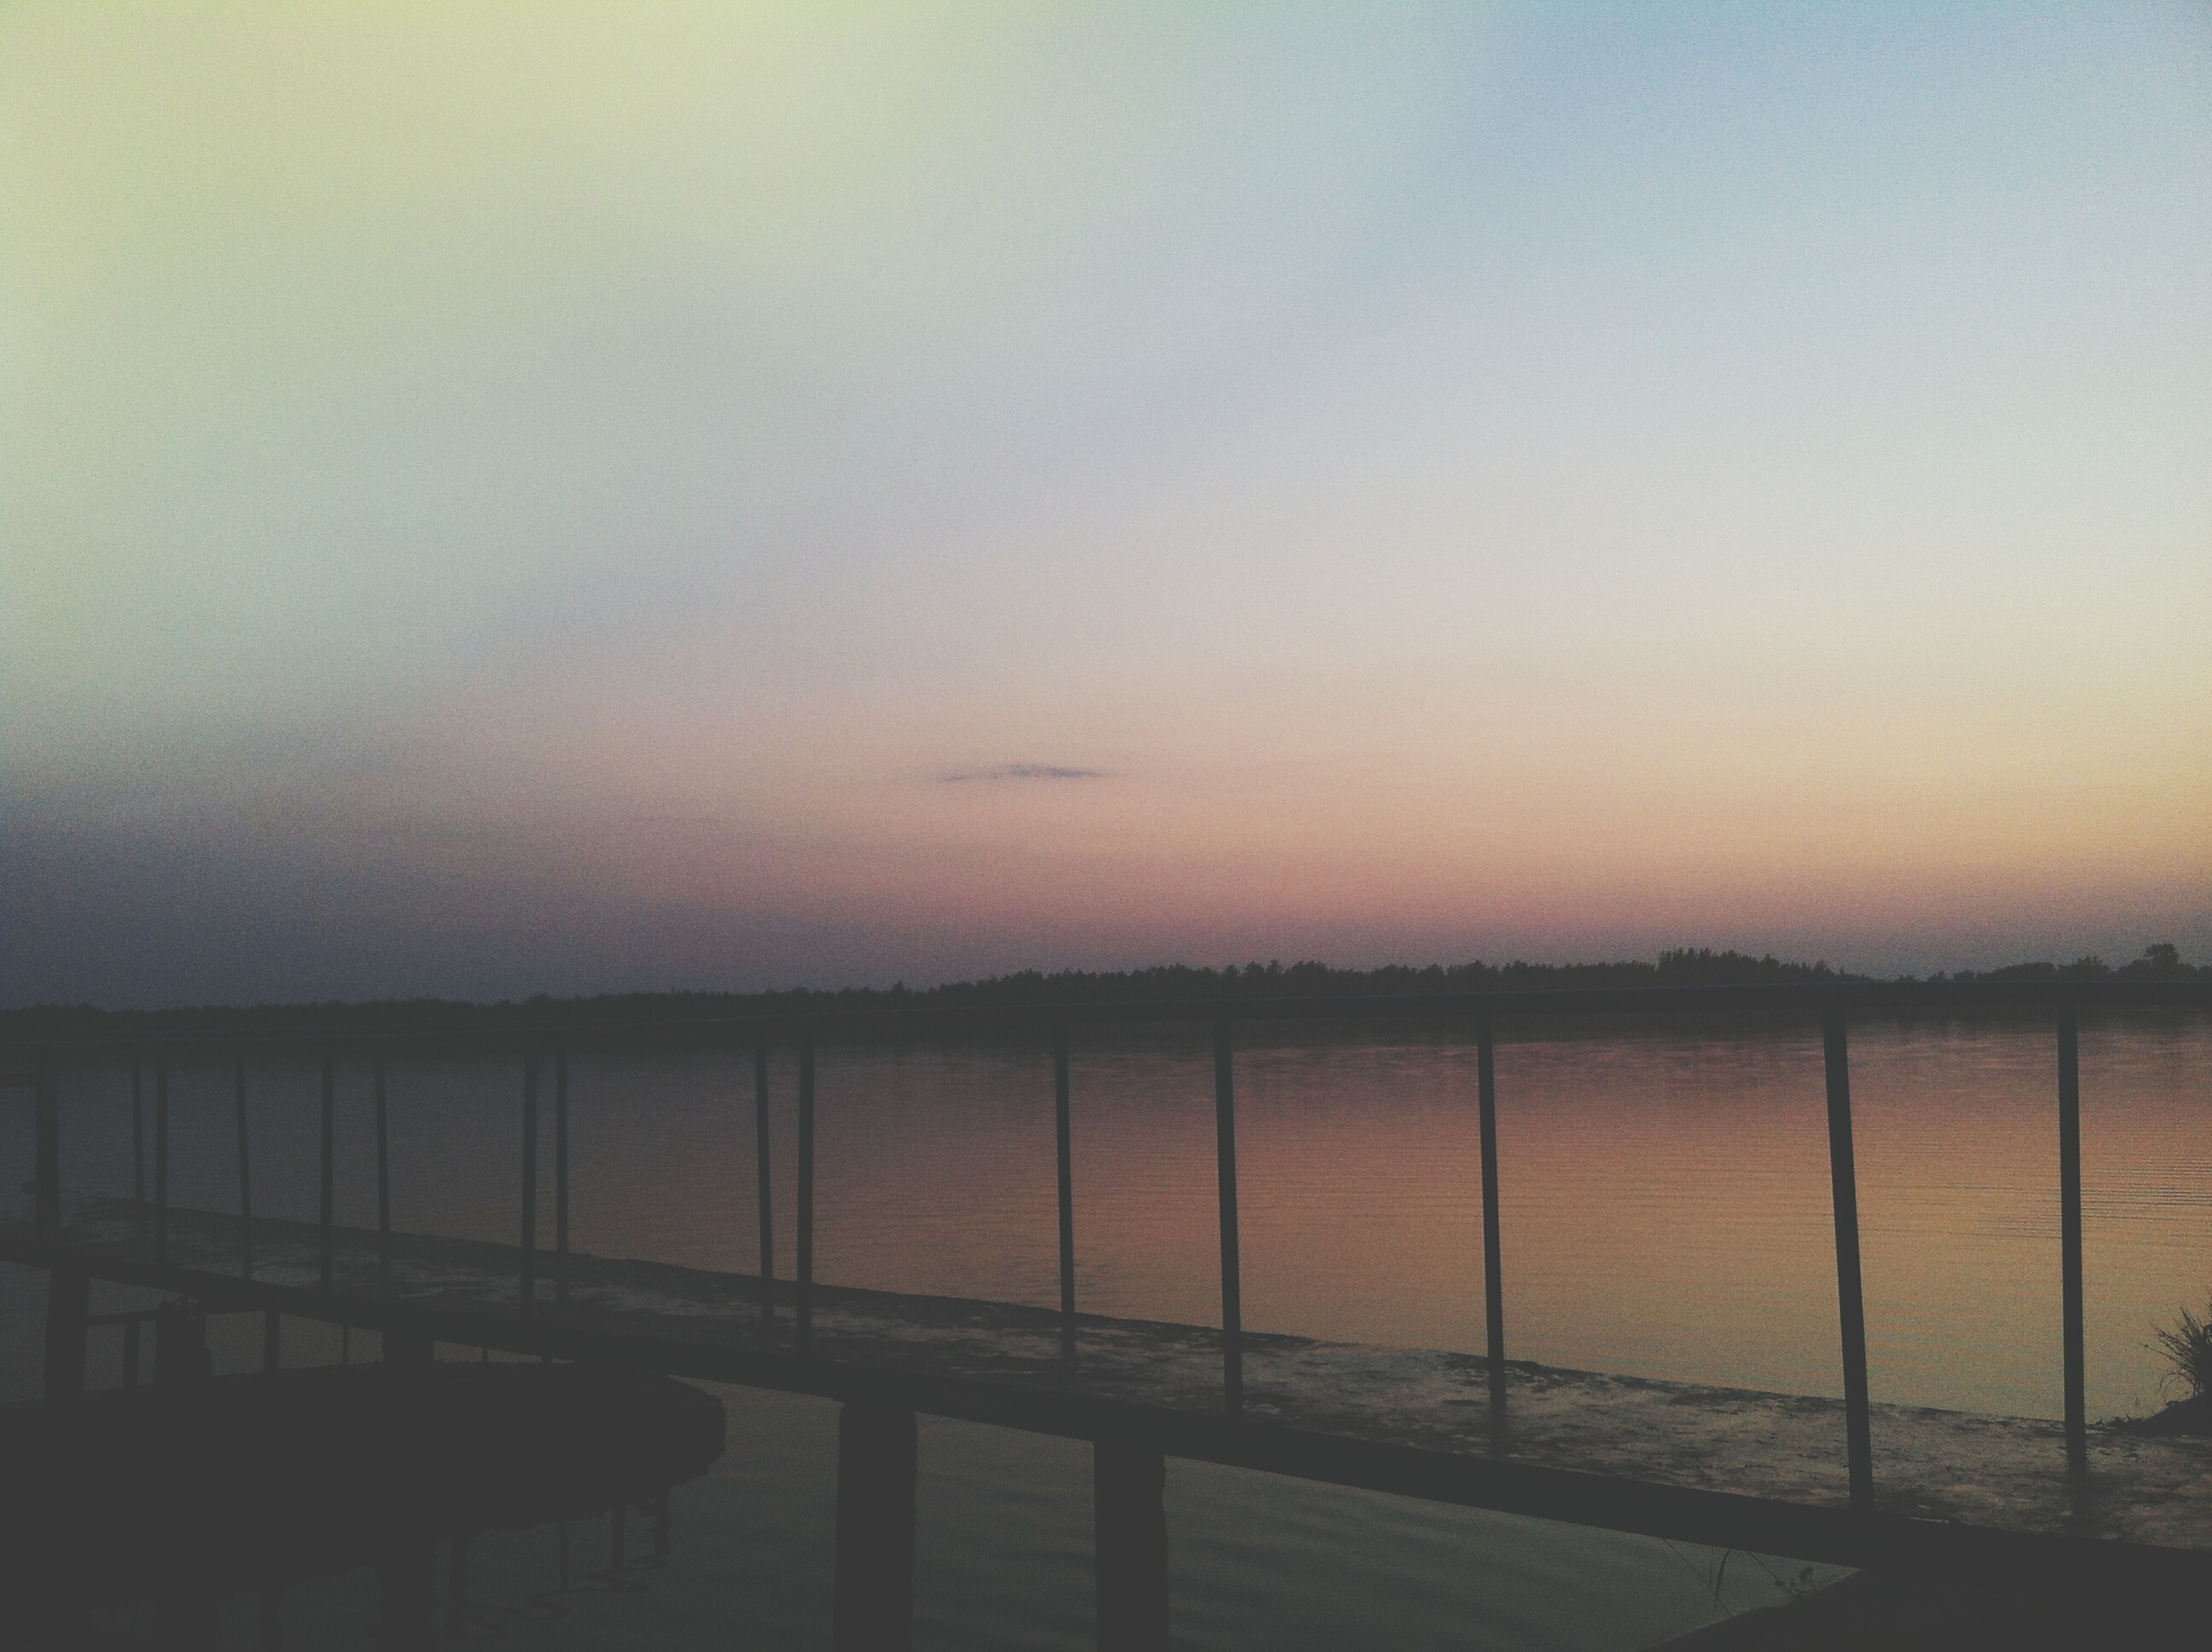 water, sunset, sea, tranquil scene, tranquility, railing, scenics, horizon over water, sky, copy space, beauty in nature, nature, clear sky, built structure, idyllic, pier, outdoors, no people, lake, calm